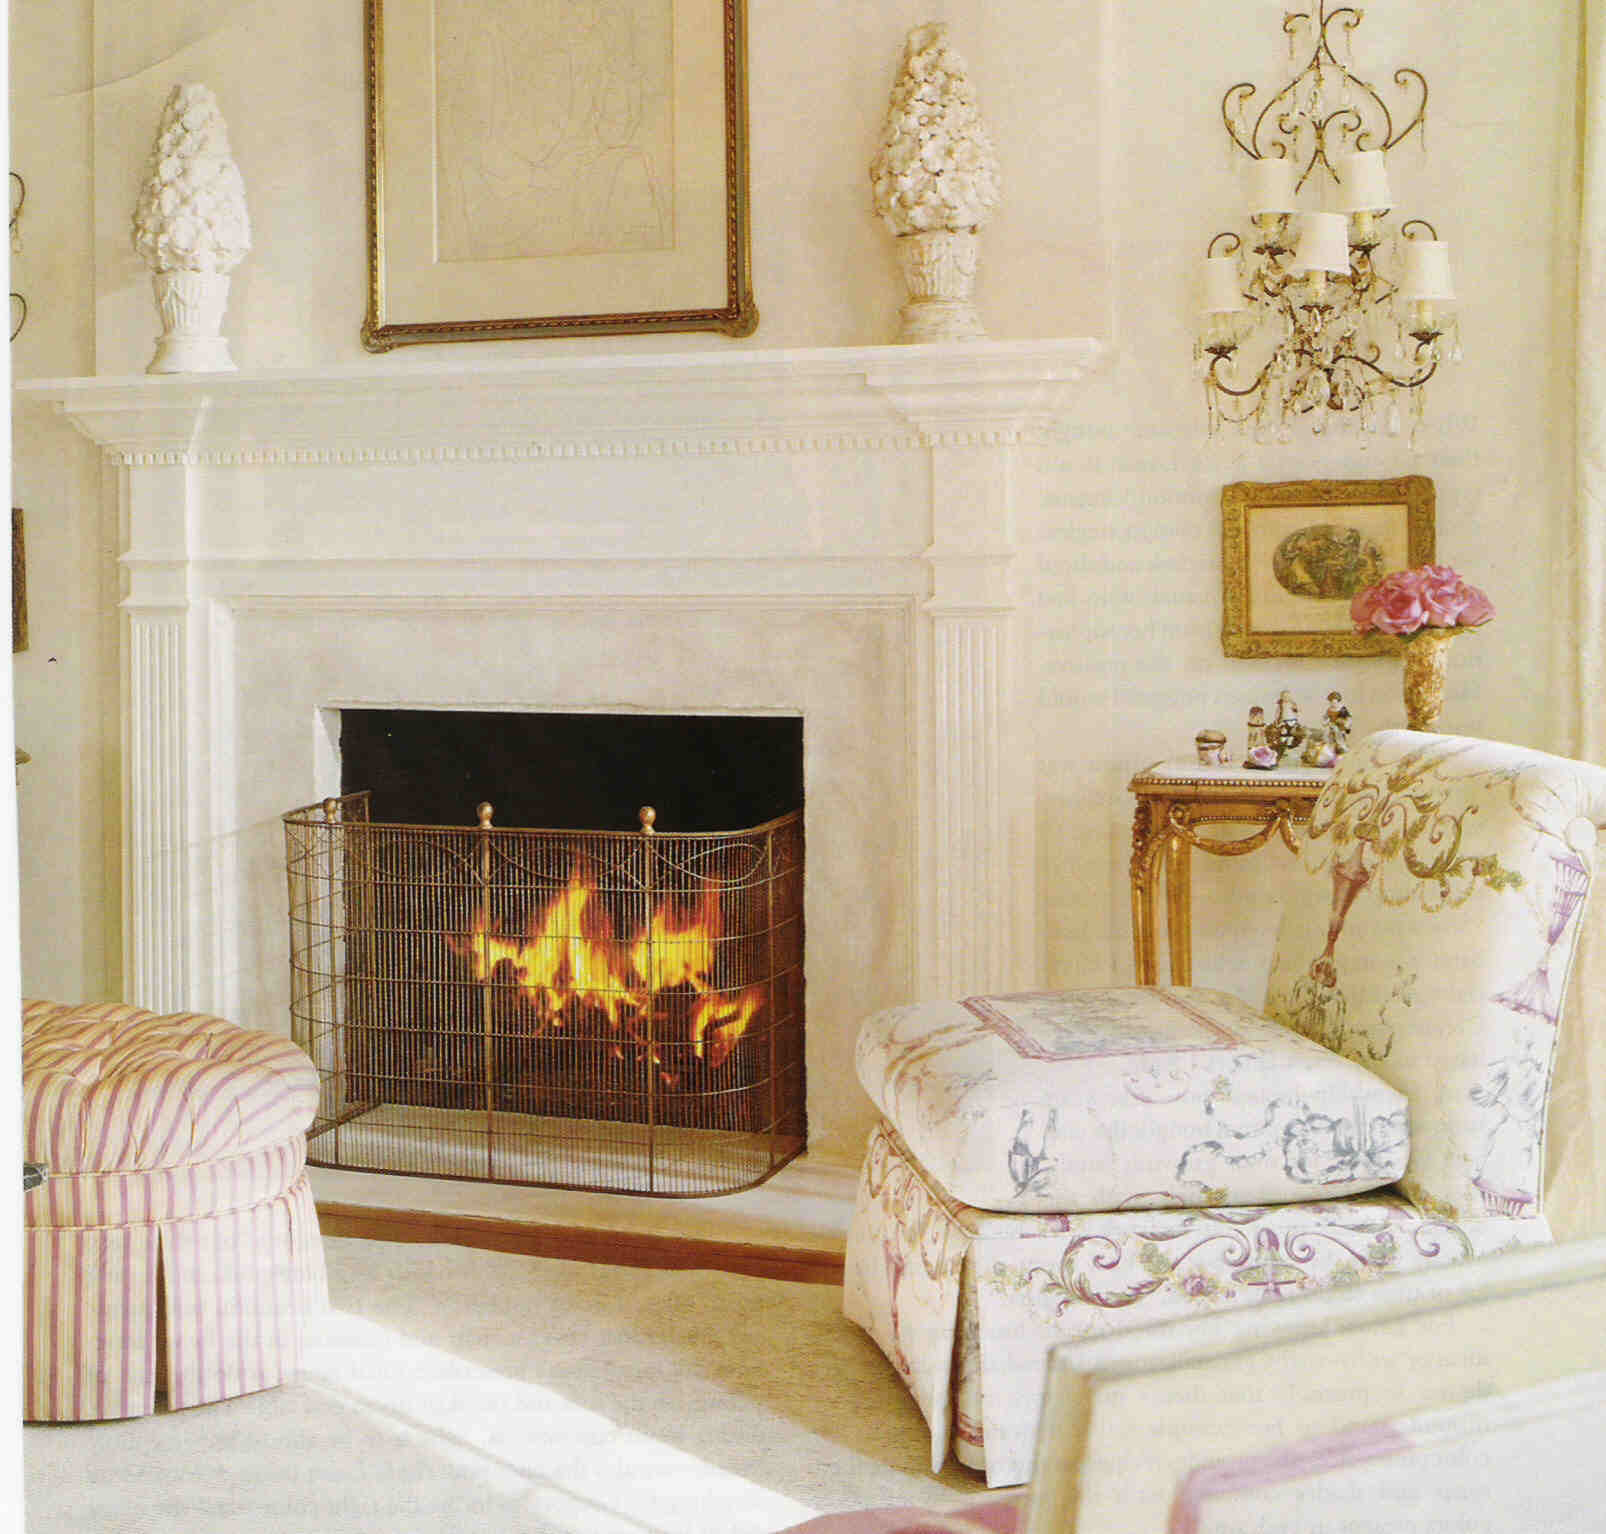 Fireplace mantel design ideas Fireplace surround ideas